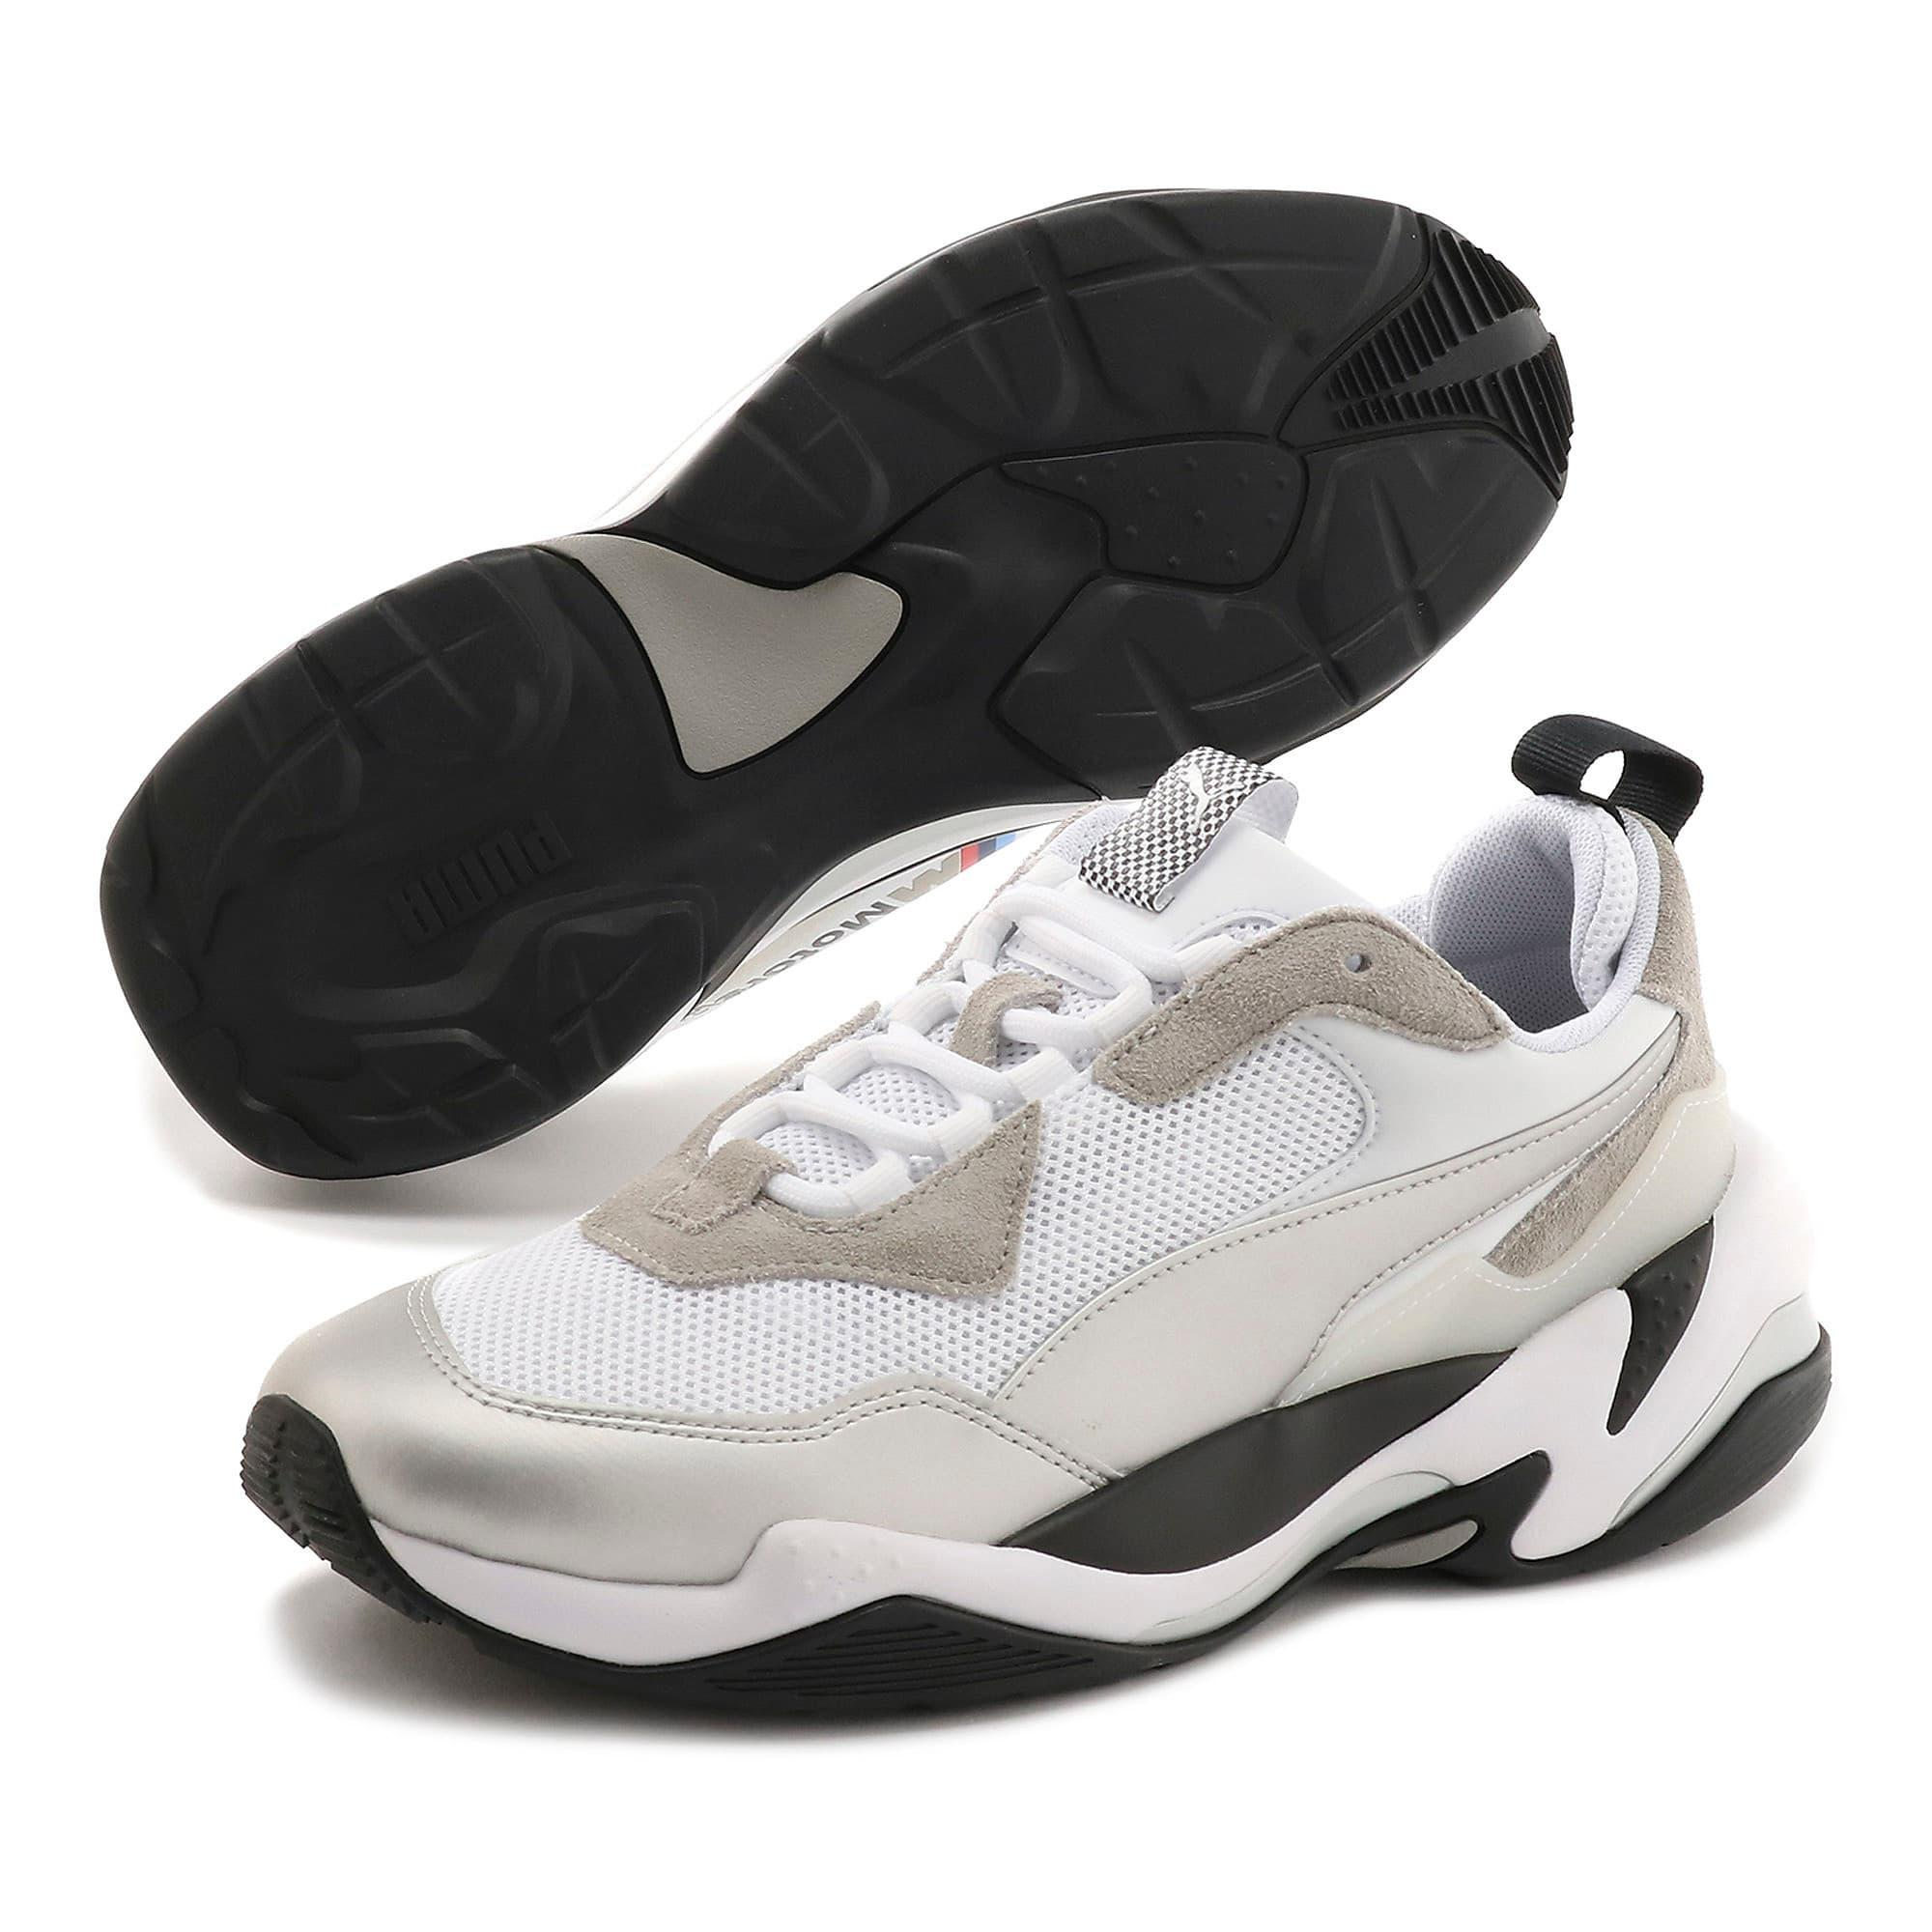 PUMA Lace Bmw Mms Thunder Sneakers in